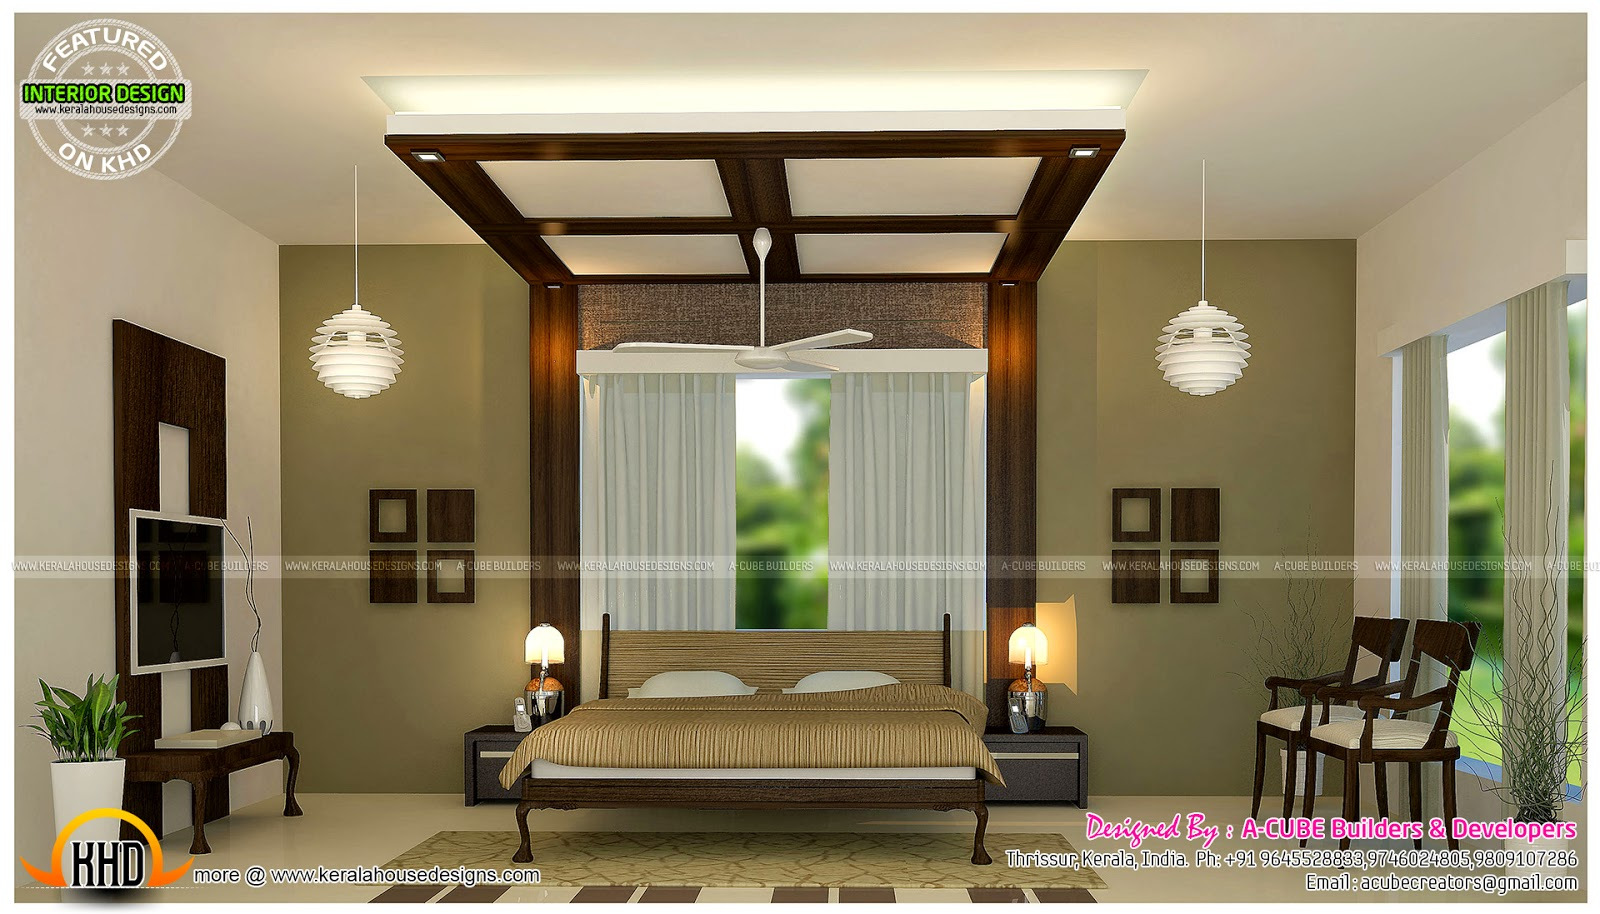 Master Bedrooms And Kitchen Interior Kerala Home Design And Floor Plans